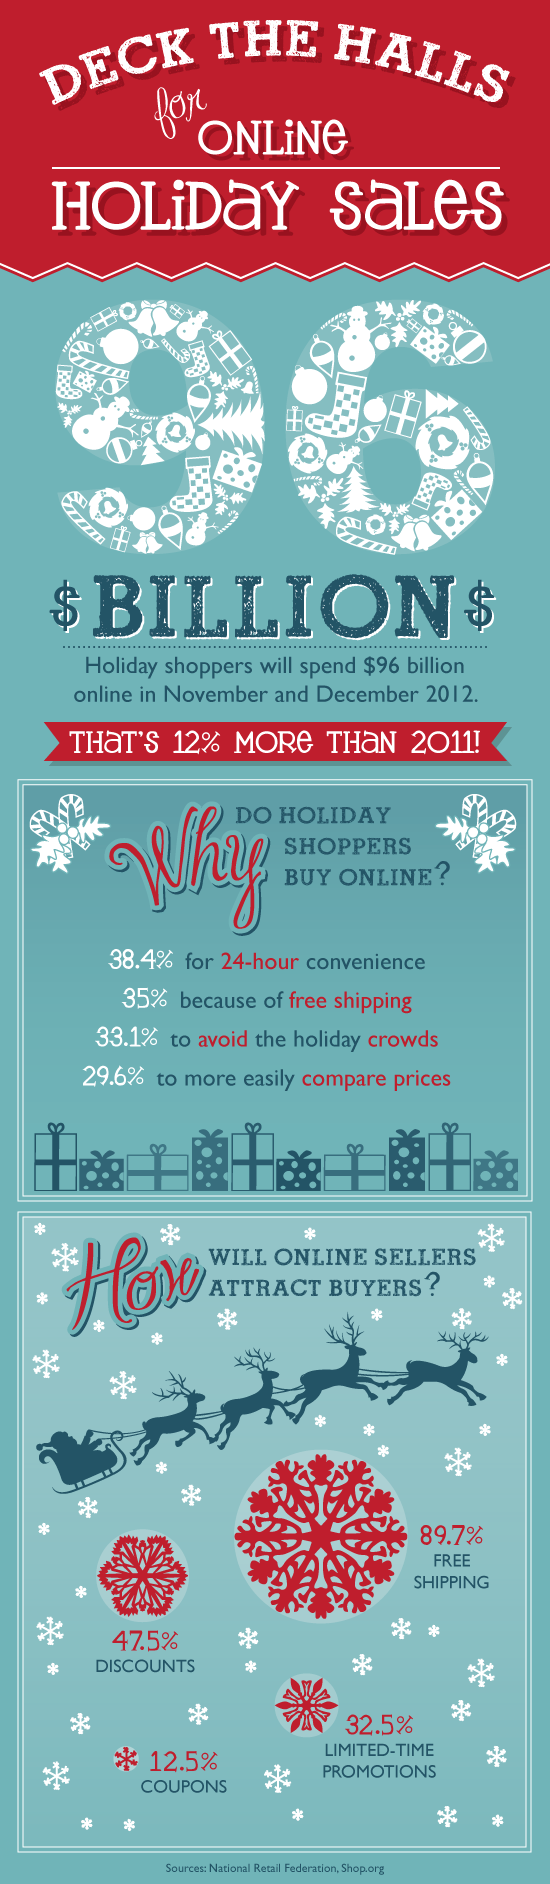 Deck the Halls for Online Holiday Sales (Infographic)